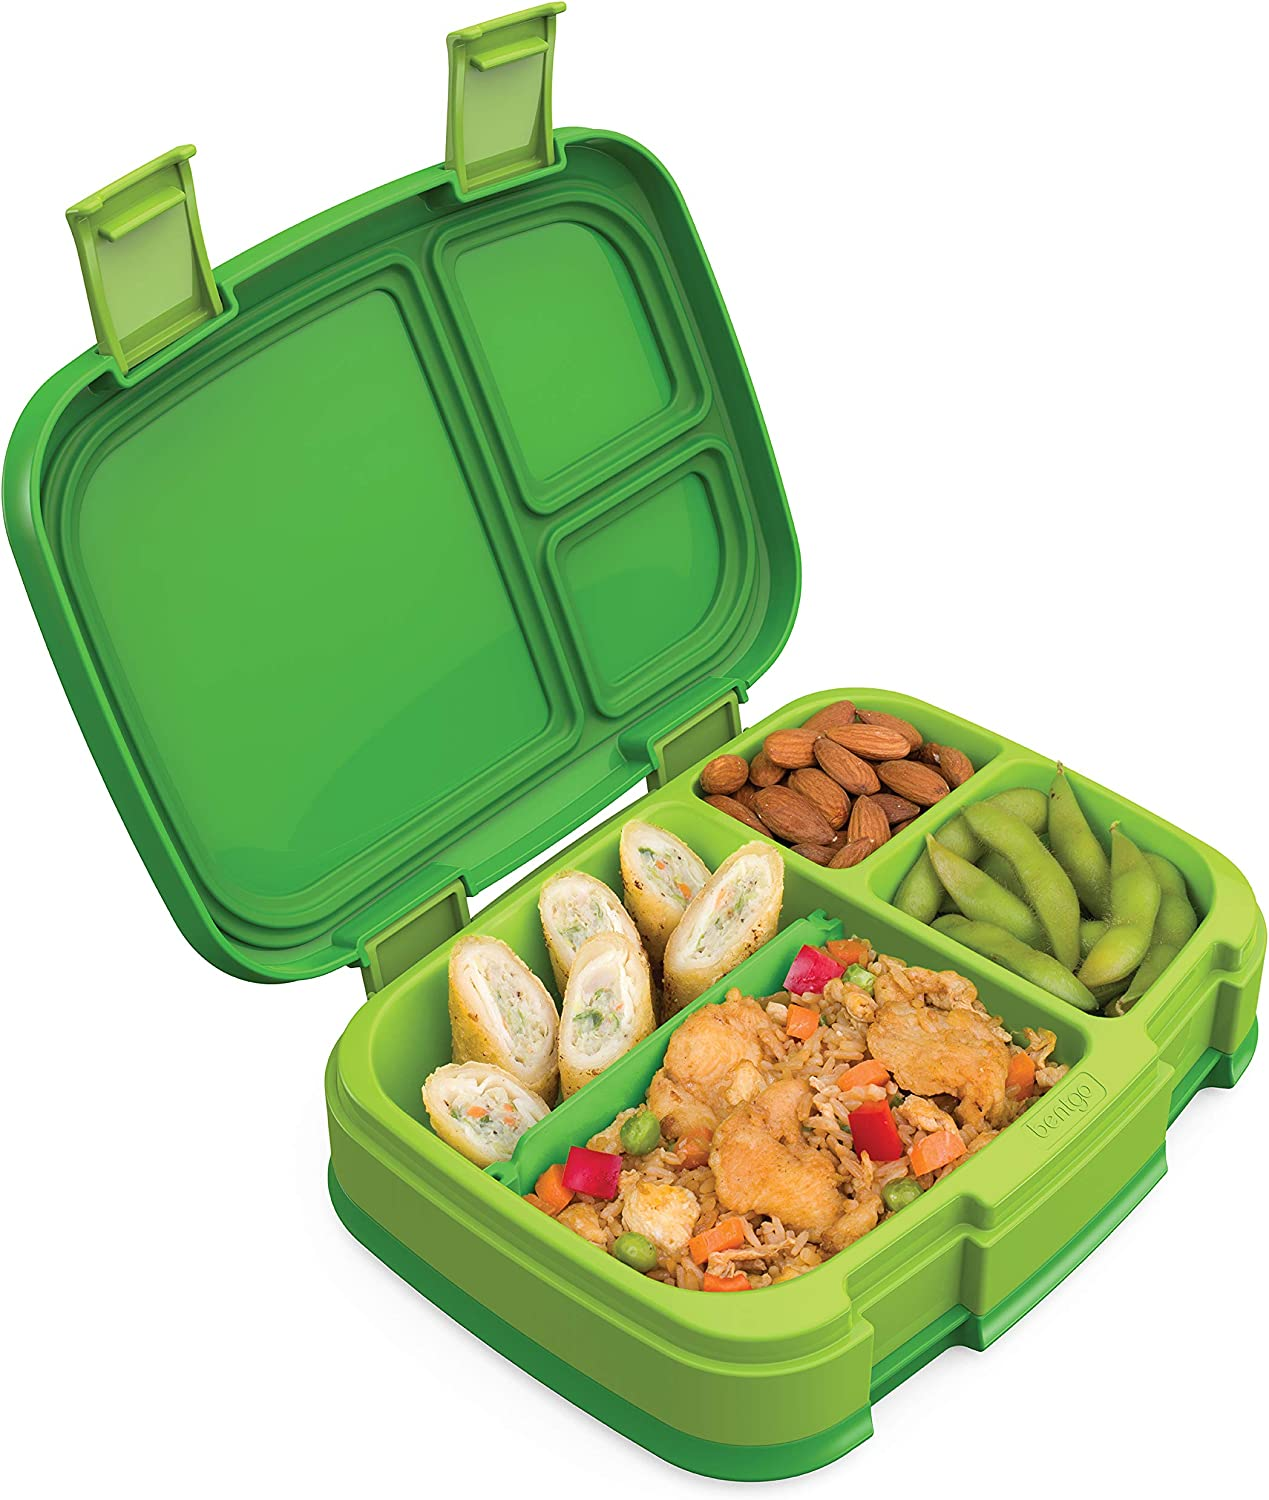 Bentgo Fresh (Green) – New & Improved Leak-Proof, Versatile 4-Compartment Bento-Style Lunch Box – Ideal for Portion-Control and Balanced Eating On-The-Go – BPA-Free and Food-Safe Materials